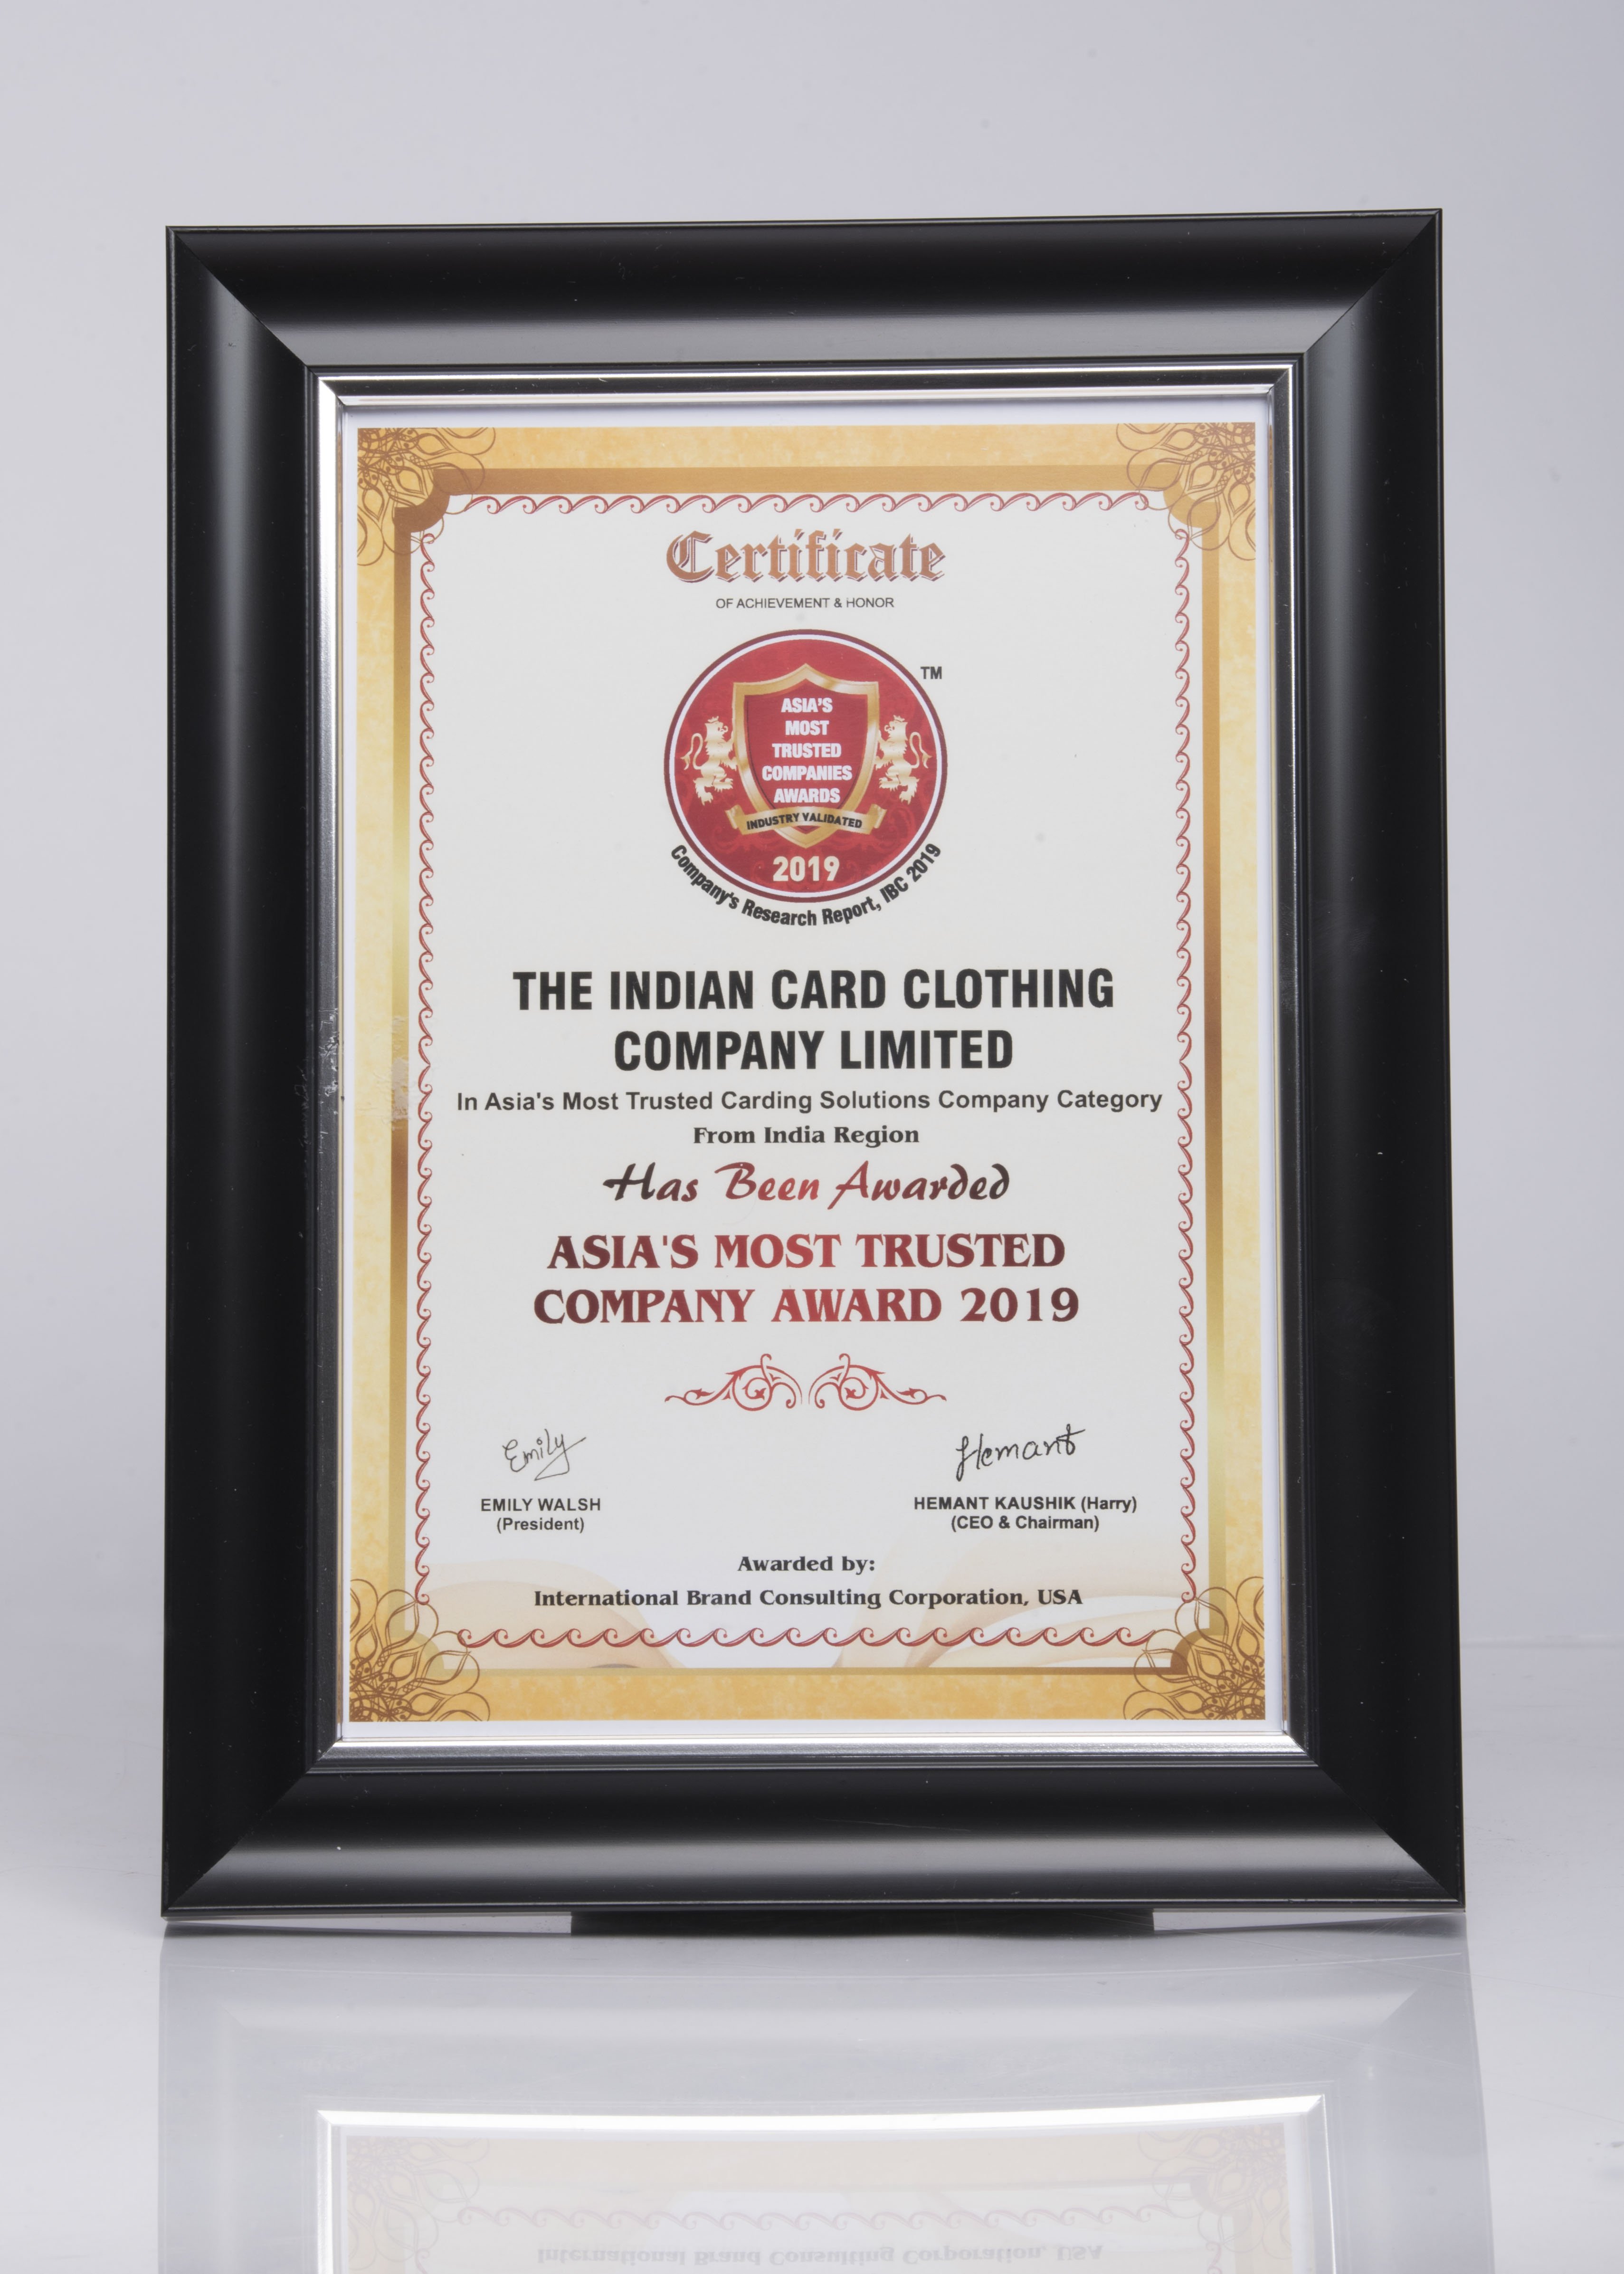 Asia's Most trusted company 2019